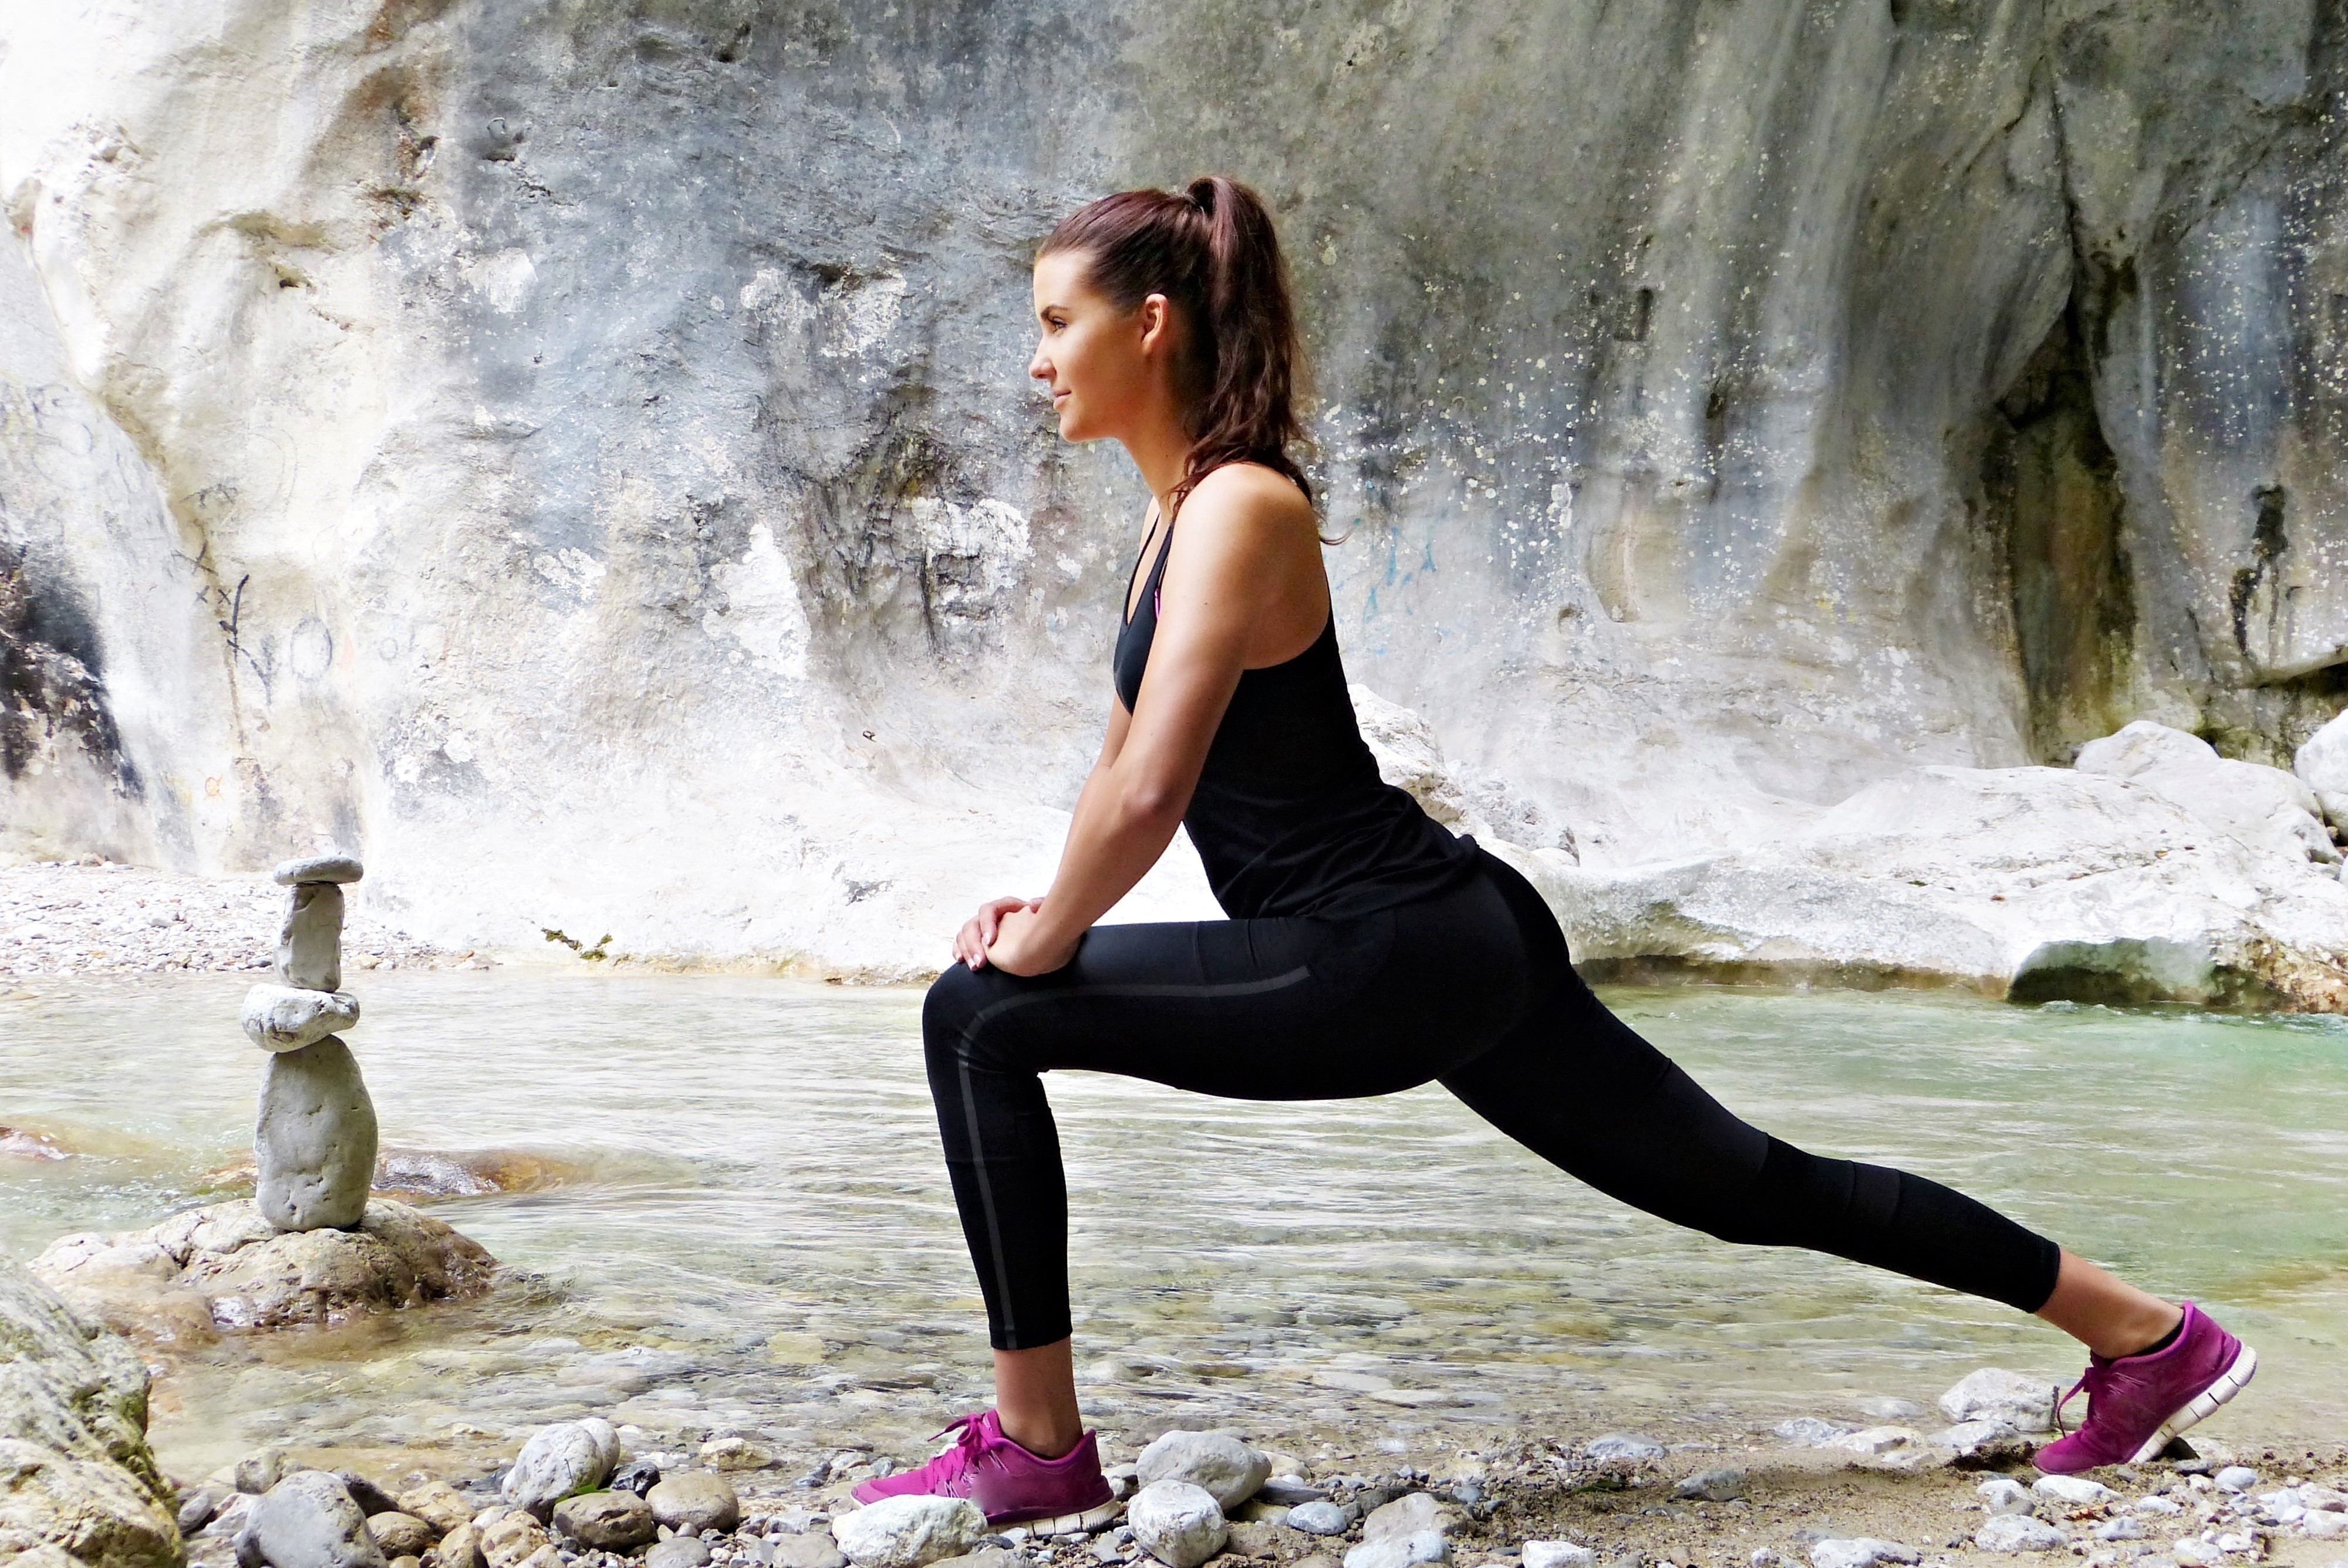 5 Steps to Healthier Post Workout Recovery